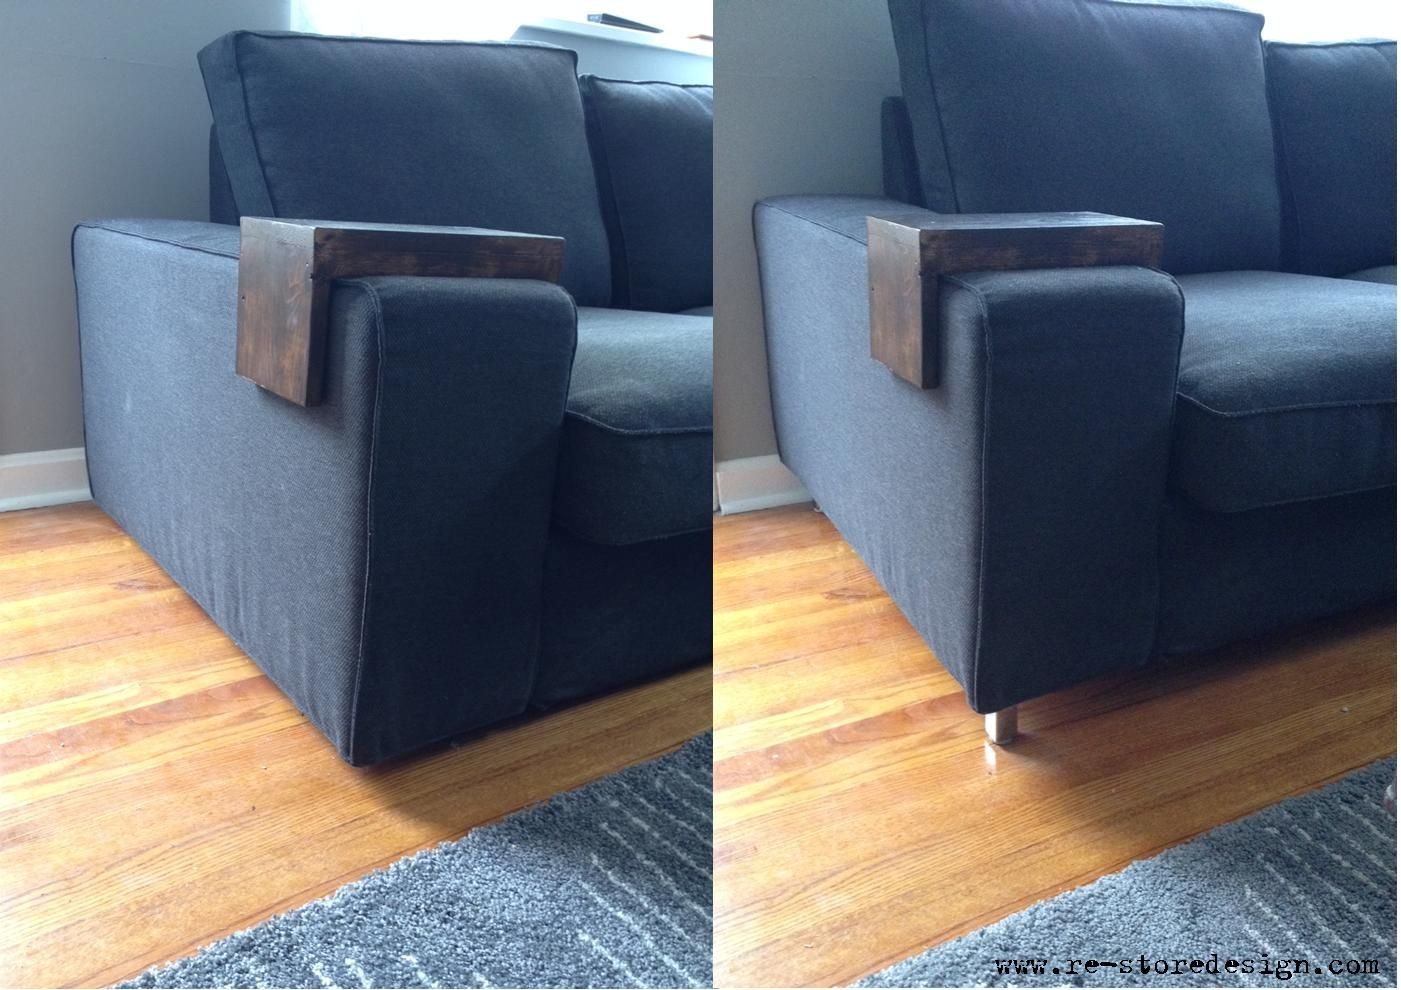 Furniture Legs For Ikea updating a couch with some #ikea besta legs @covercouch